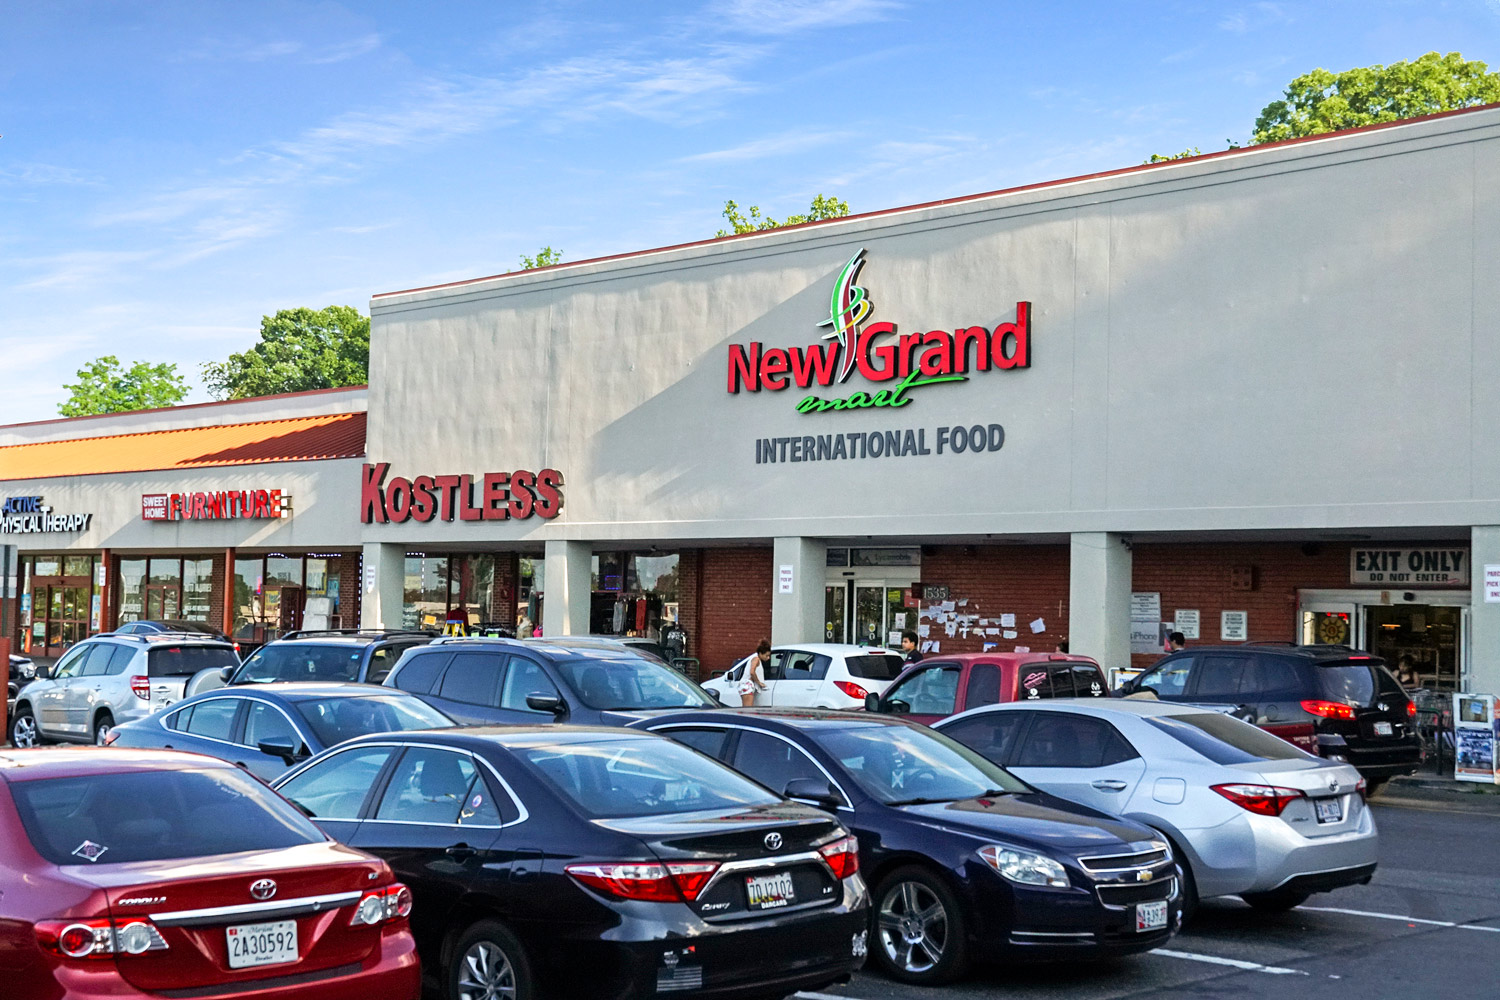 Walking distance to New Grand Mart in Langley Park, MD